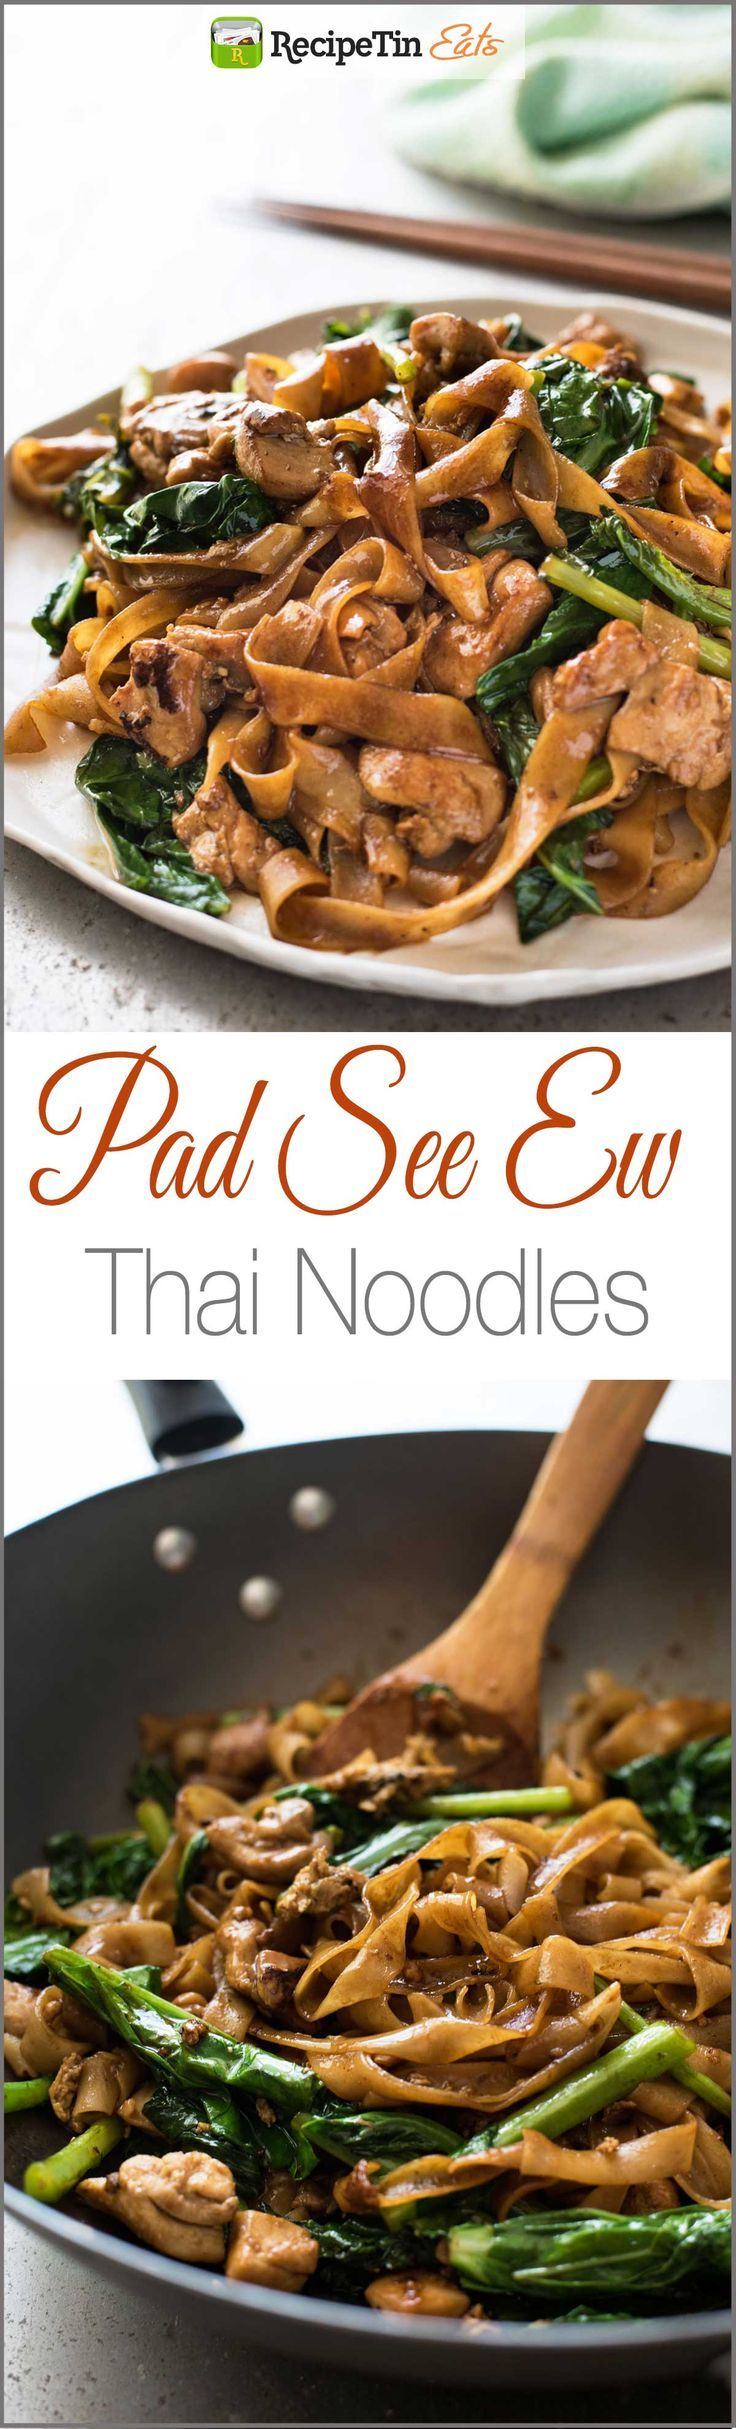 558 best recipes asian inspired images on pinterest sandwiches pad see ew a real restaurant quality thai stir fried noodles recipe its easy forumfinder Image collections